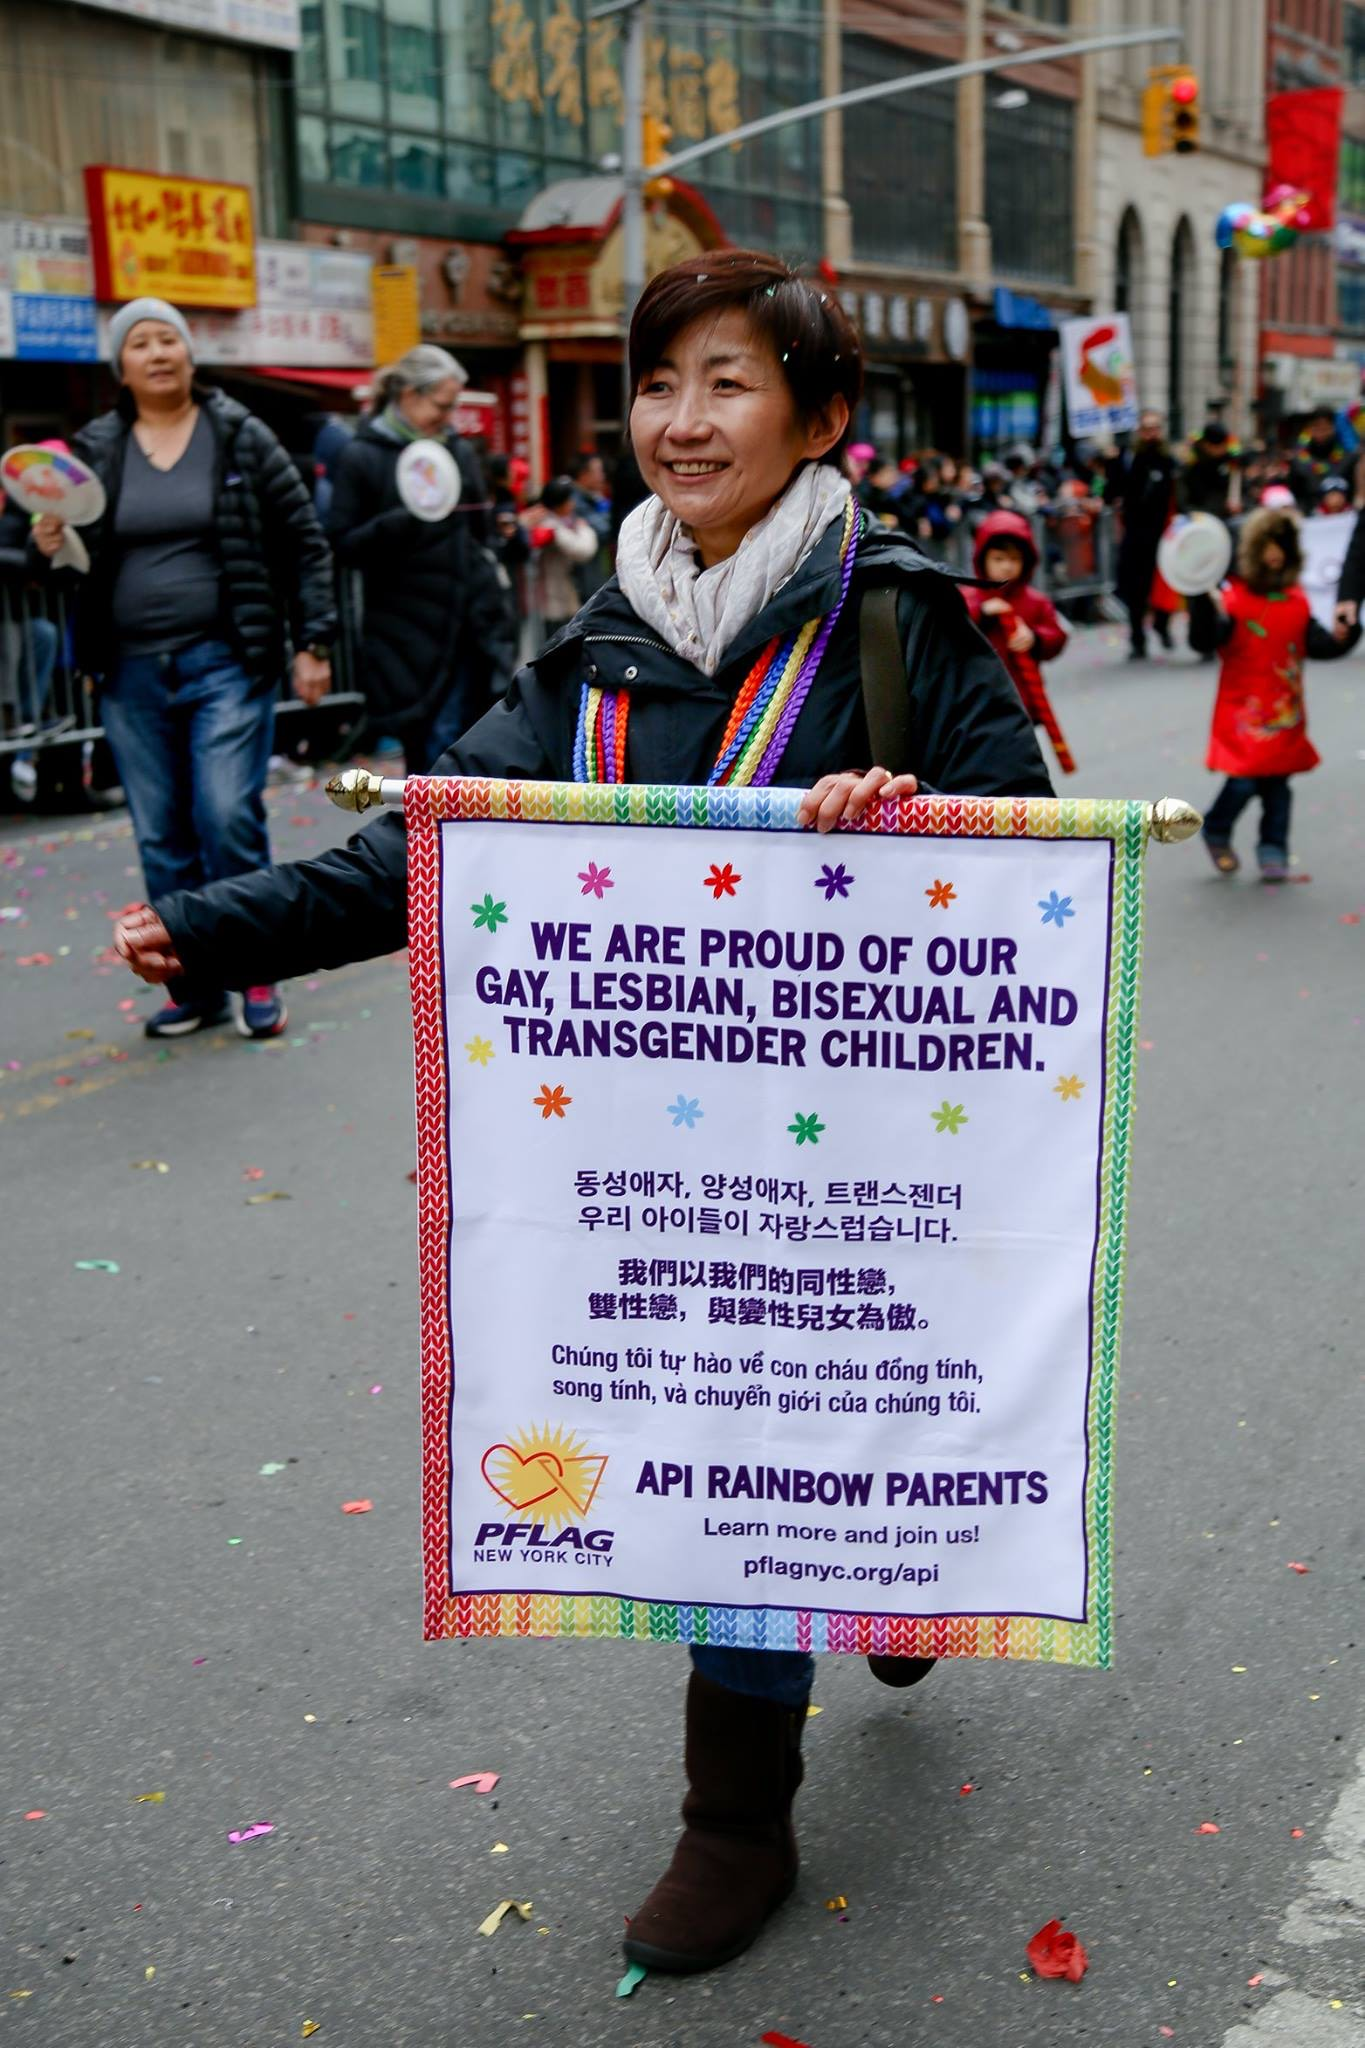 Asian American mother marches in a Pride parade with a sign in many languages that says We Are Proud of Our Gay Lesbian Bisexual Transgender Children.